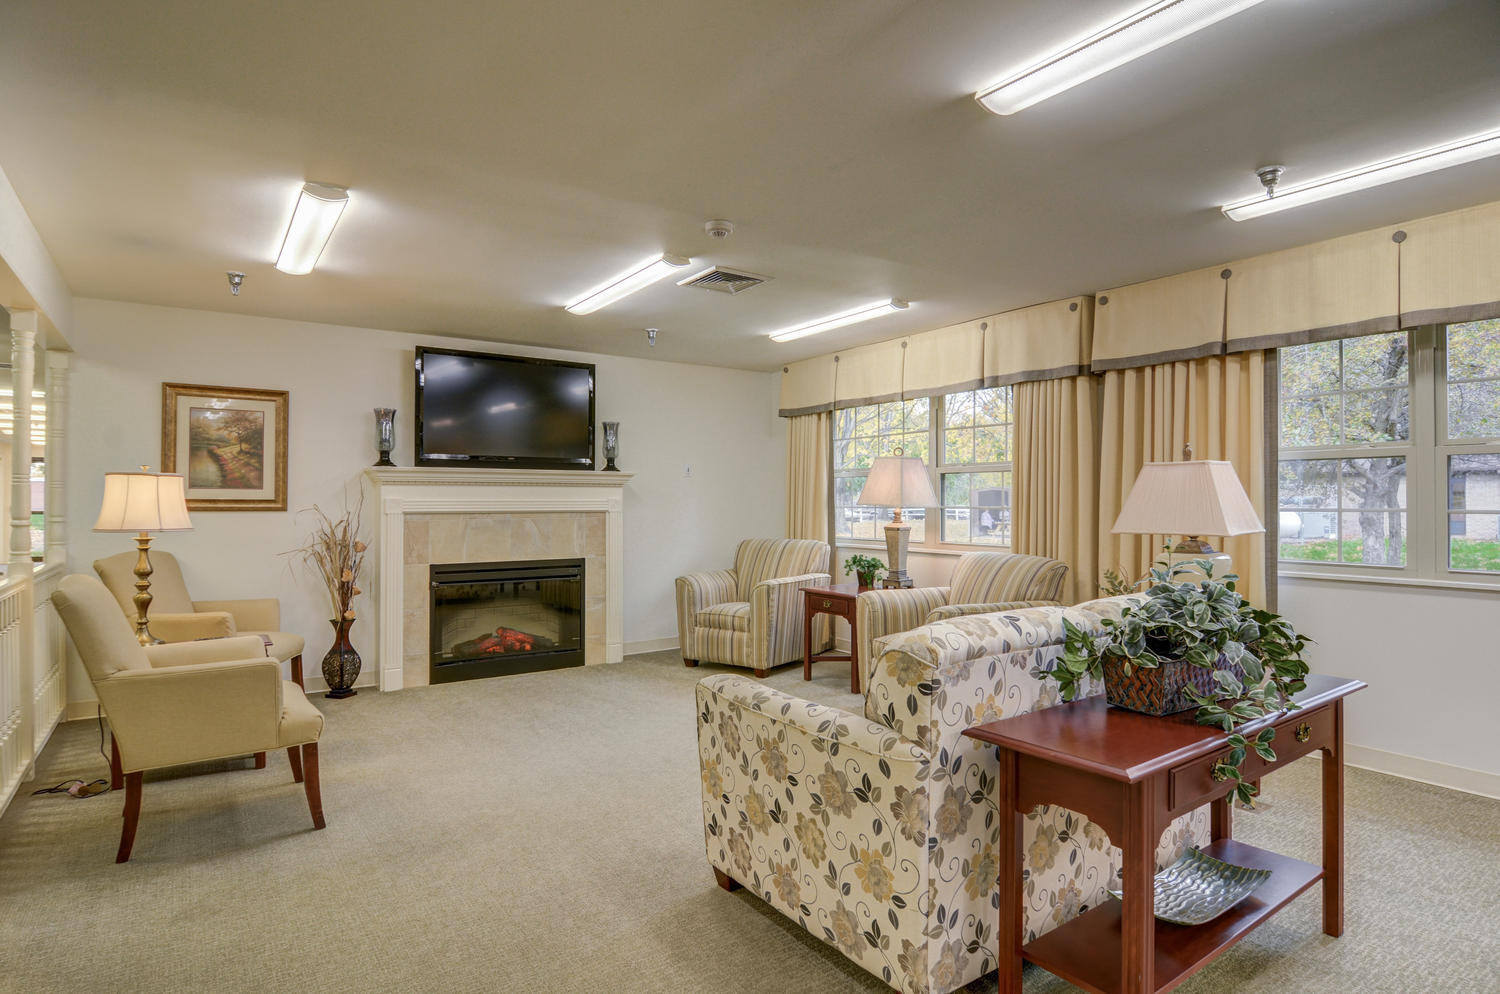 Stonerise Belmont sitting room with windows, fireplace and TV